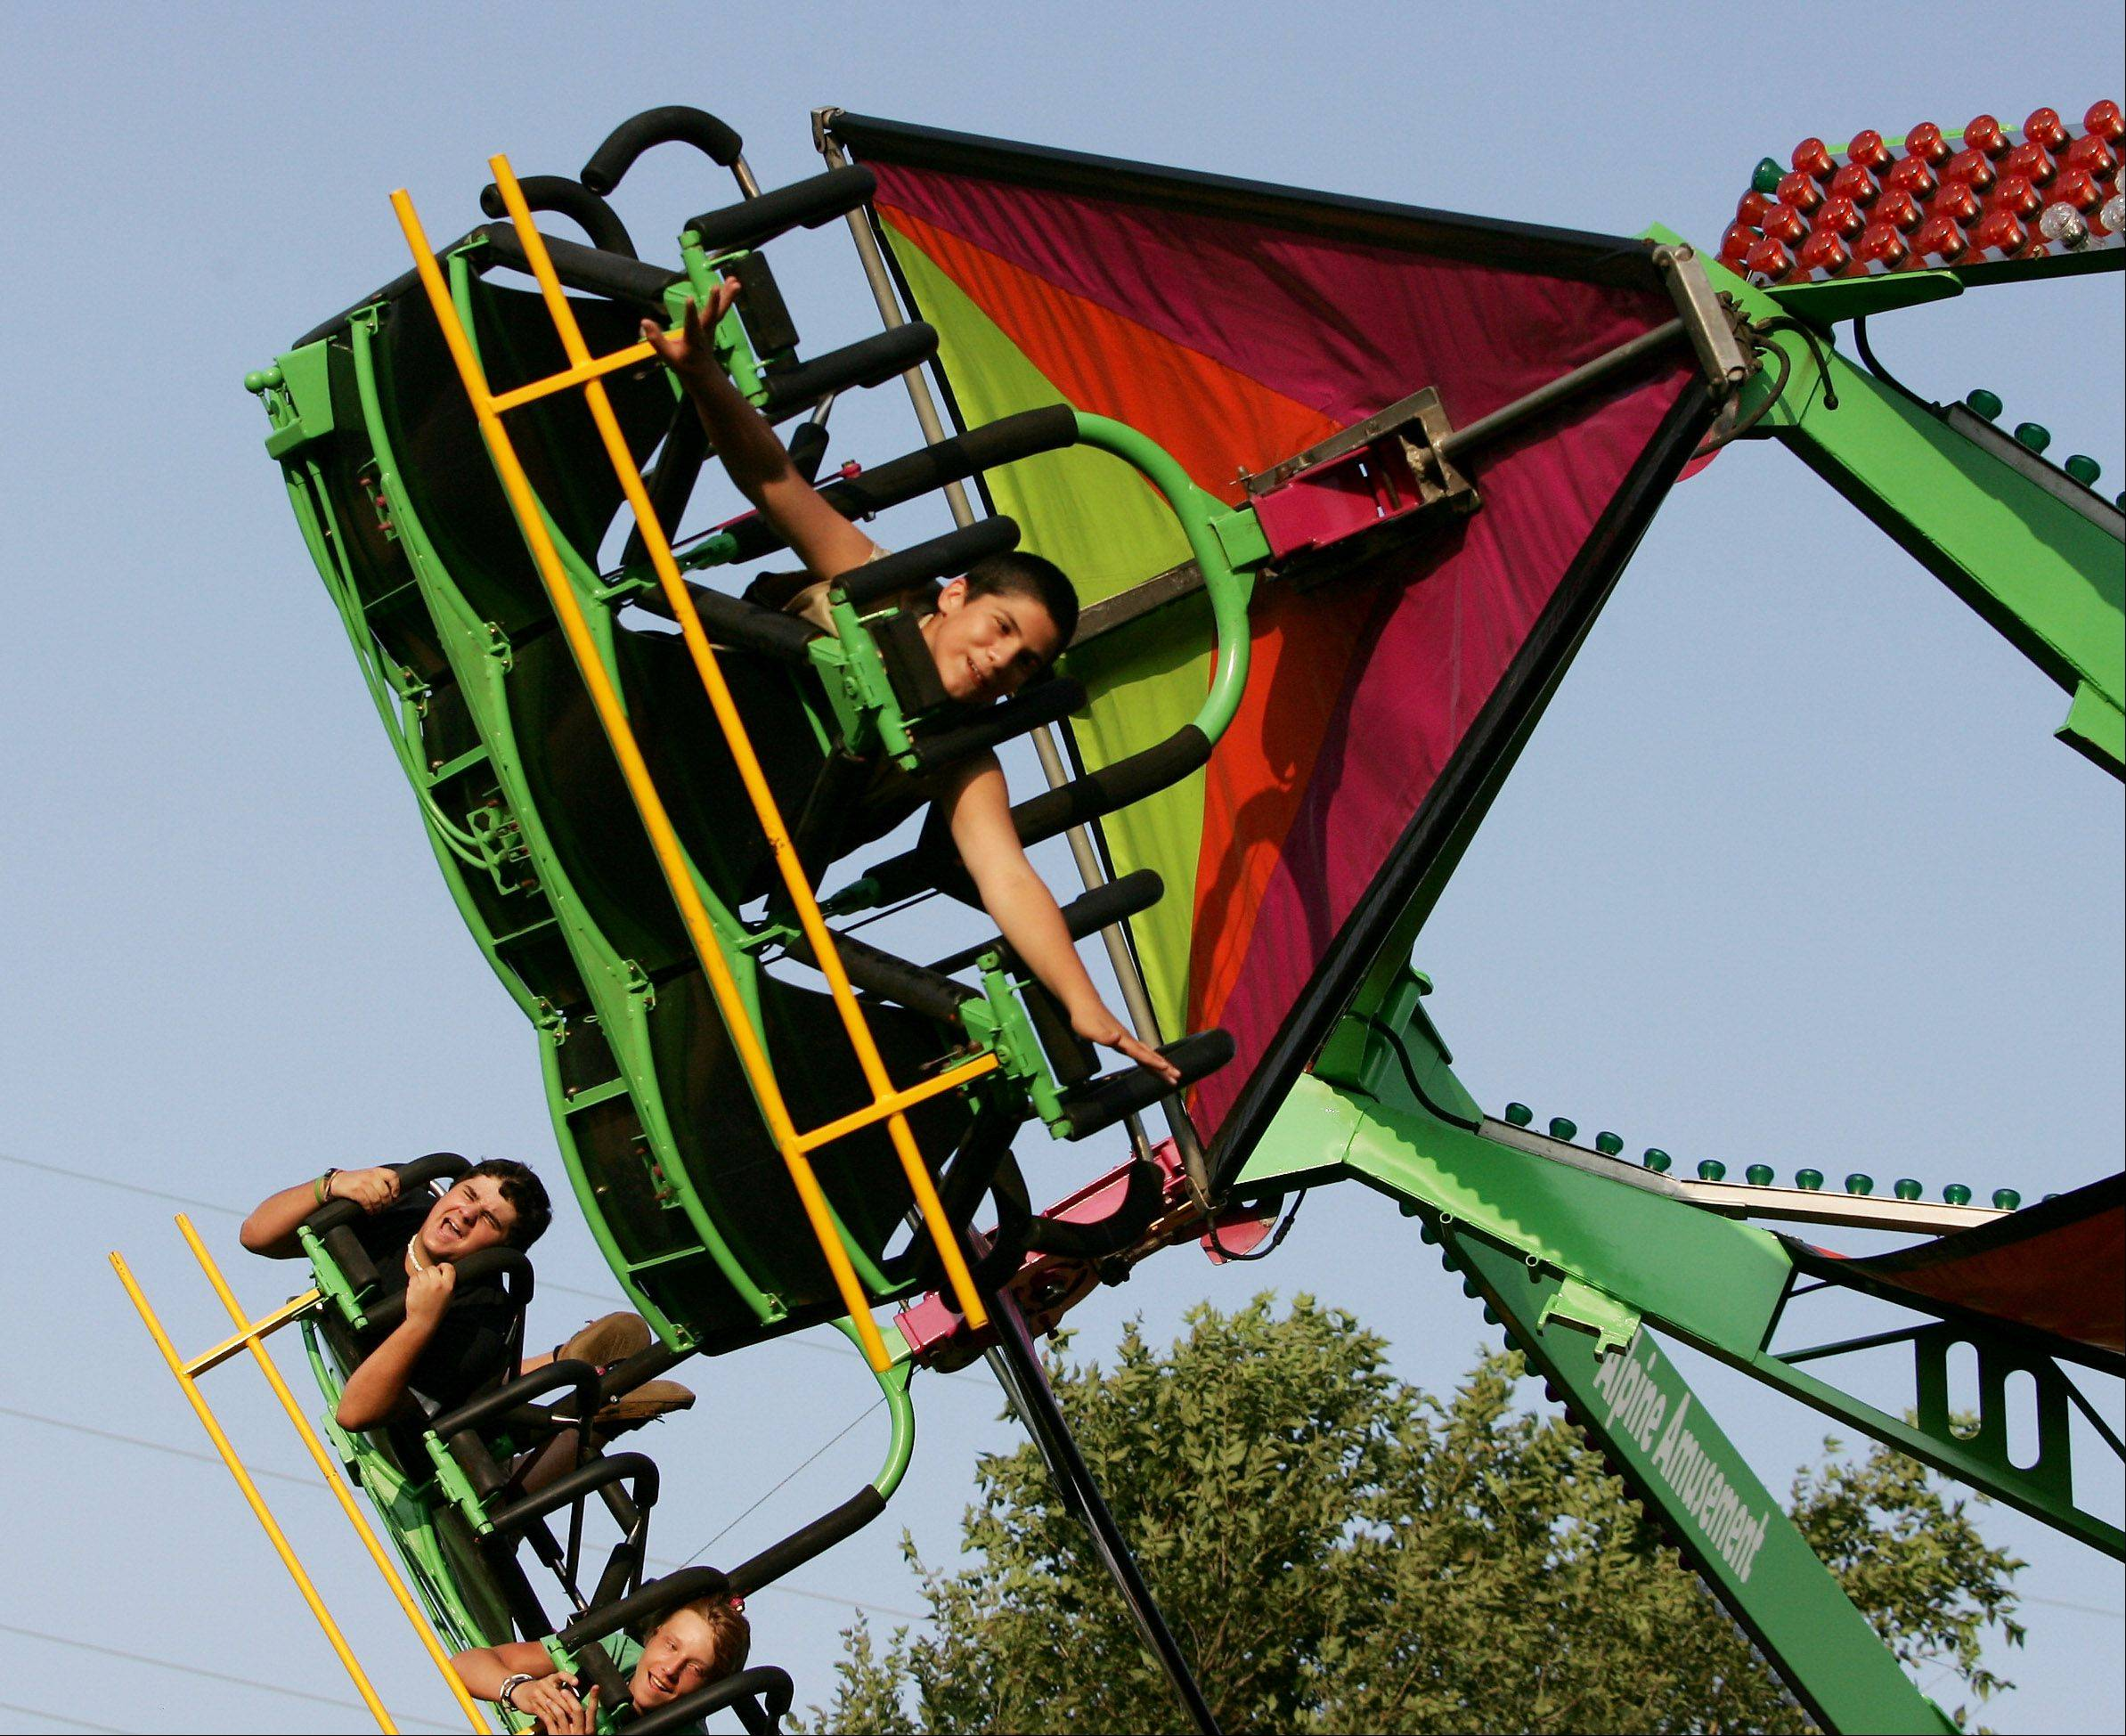 Alfonso Gonzalez, 13, of Lake Villa pretends to fly like Superman on the Cliff Hanger at the 77th Annual Lake Villa Days in 2010.